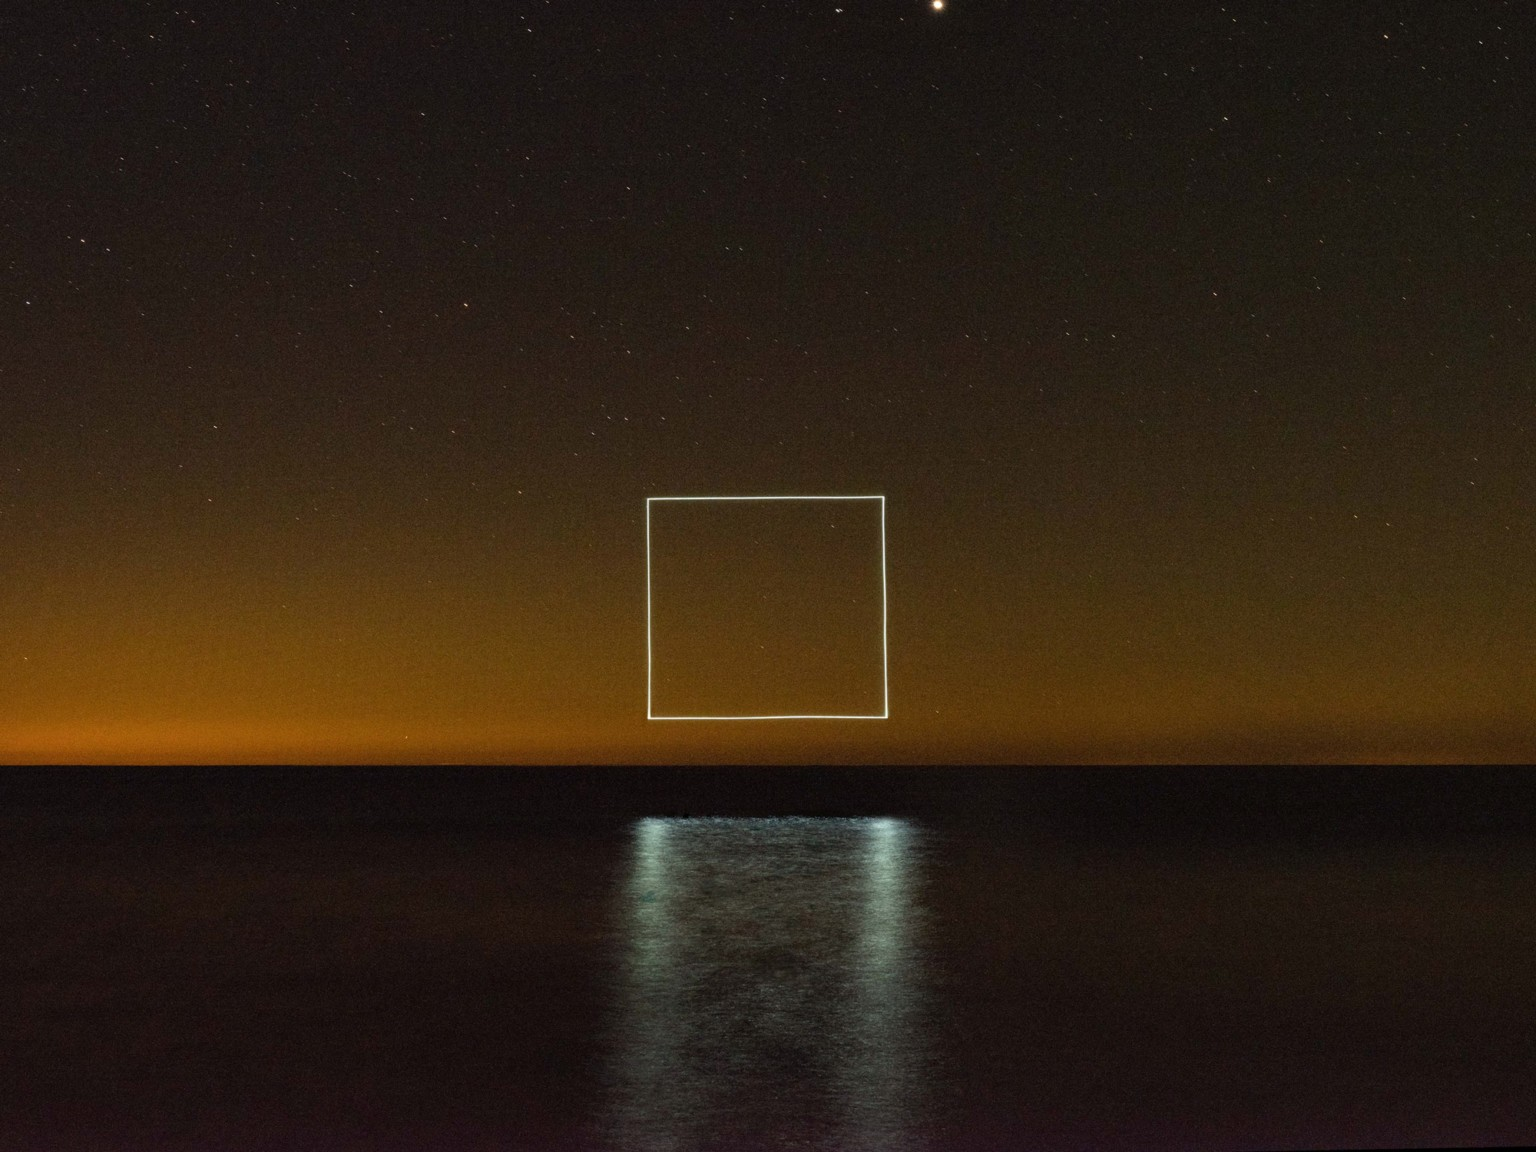 Illuminated Symbols Hover Above the Horizon in New Light Drawings by Reuben Wu